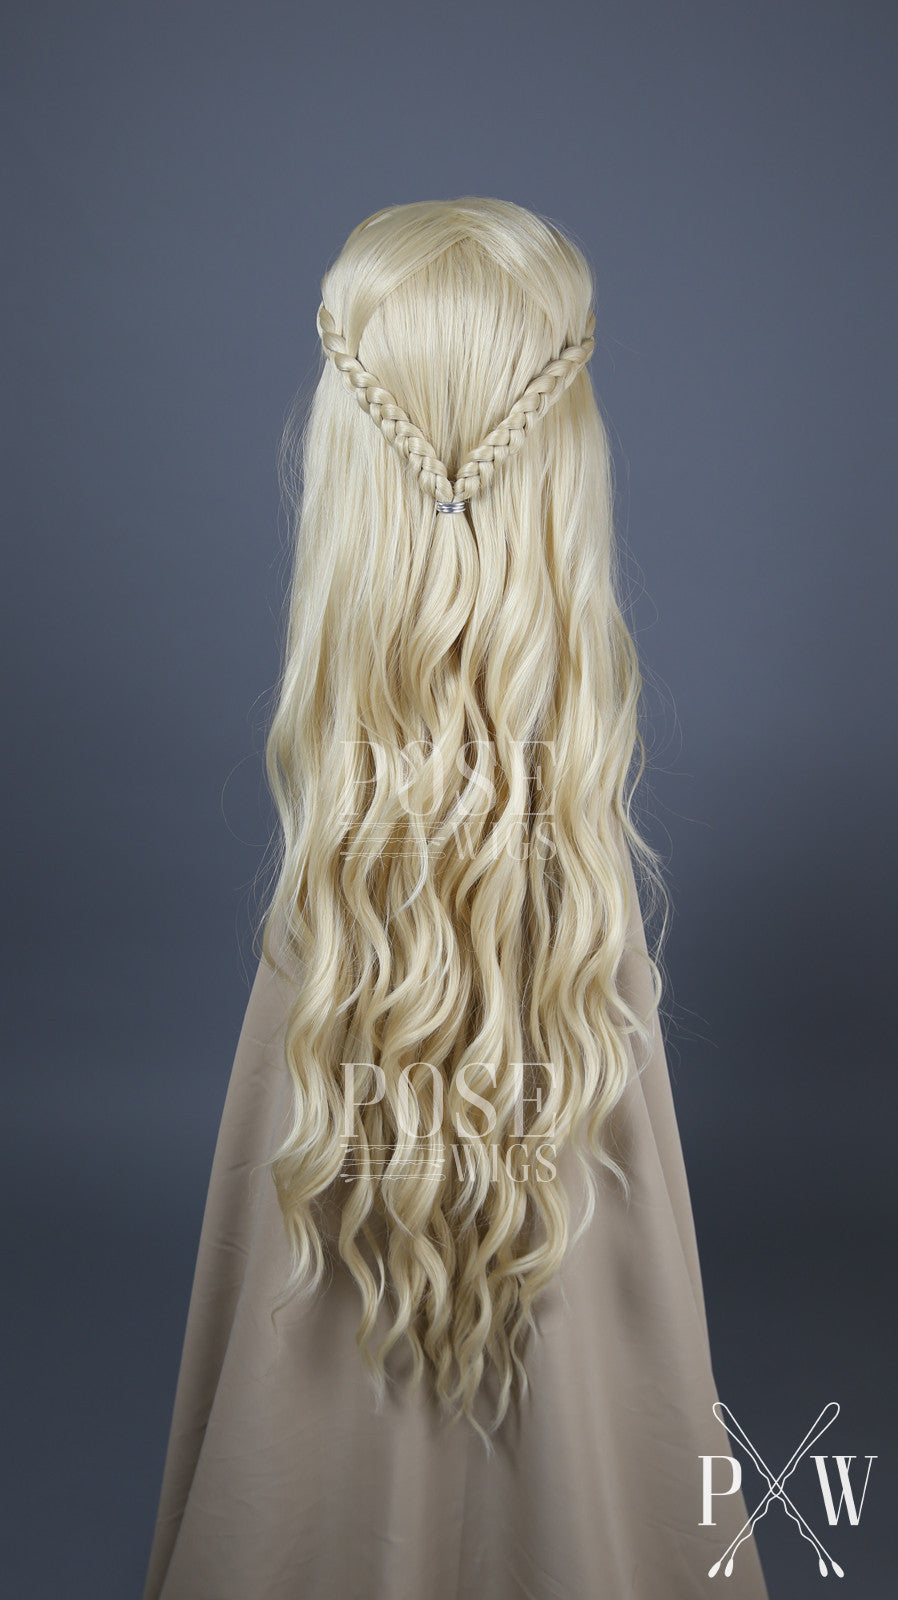 Daenerys Cosplay Blonde Custom Braided Long Curly Lace Front Wig - Lady Series